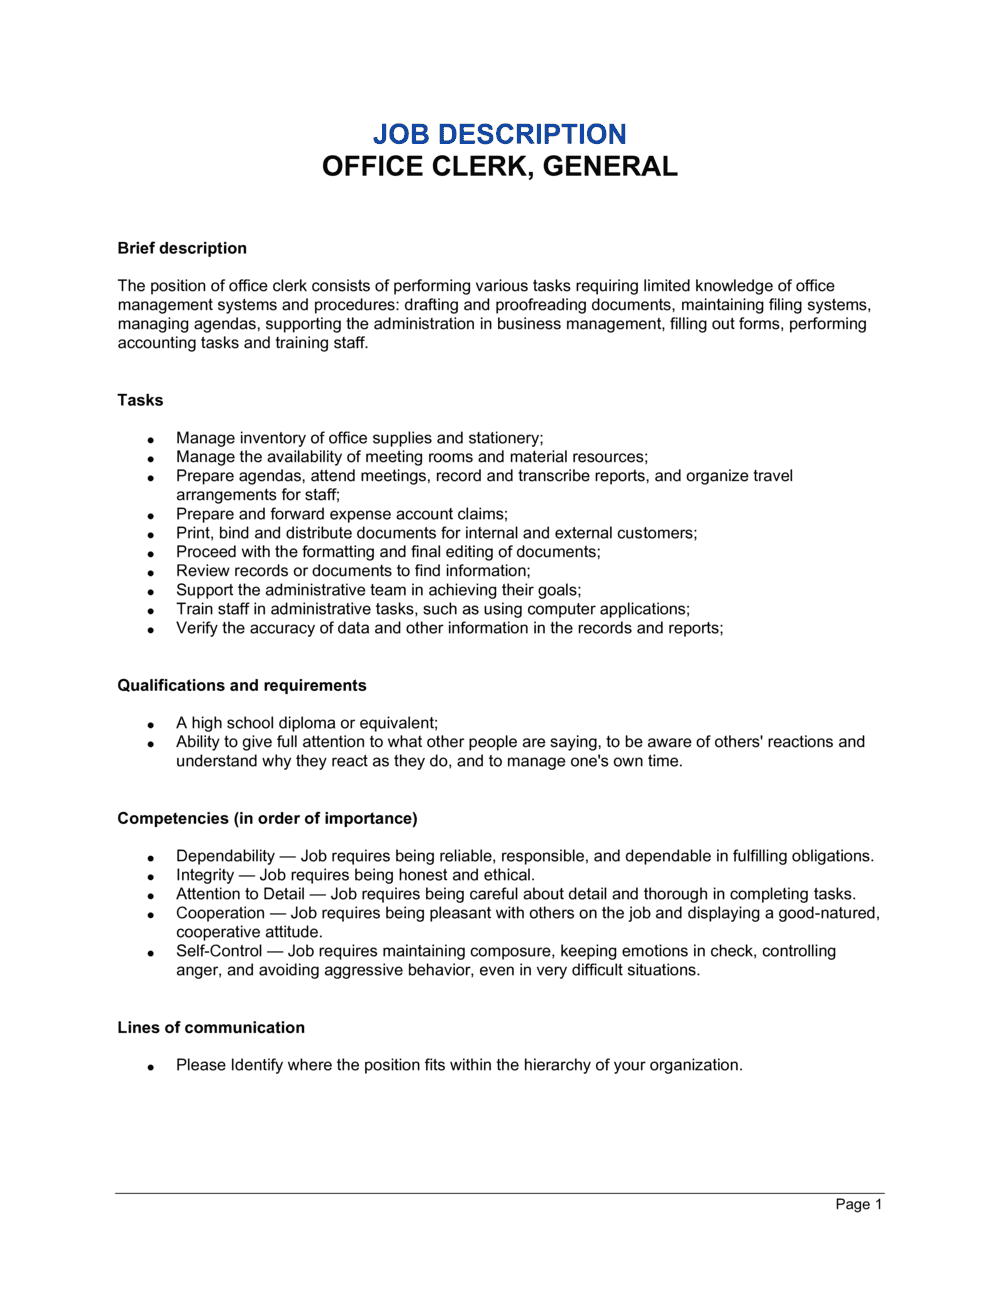 Business-in-a-Box's Office Clerk_General Job Description Template